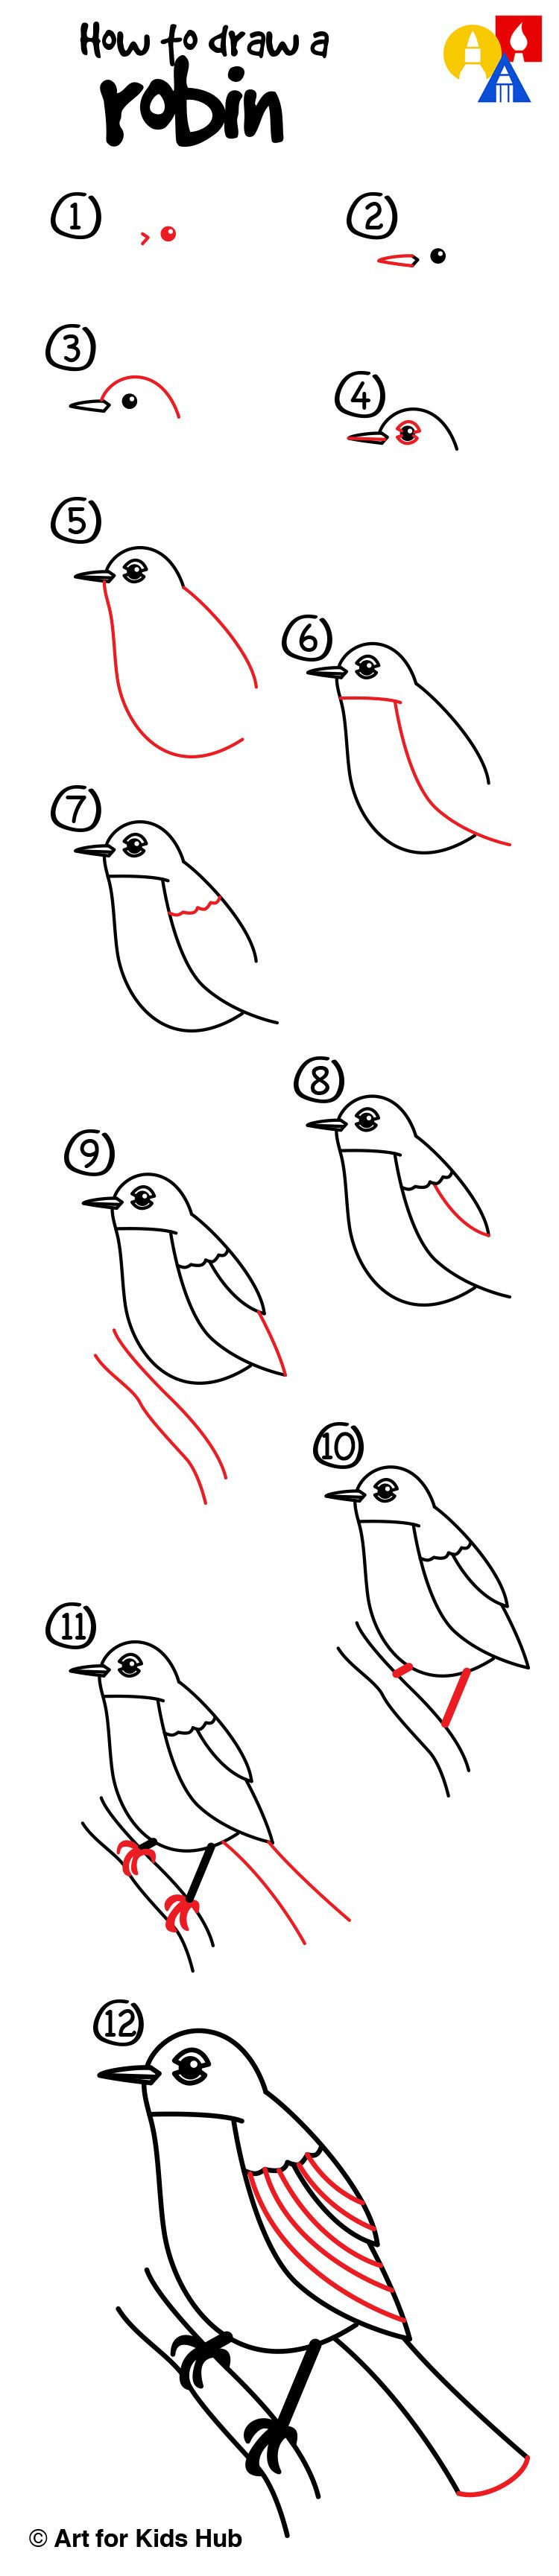 How To Draw A Robin Bird (realistic)  Art For Kids Hub